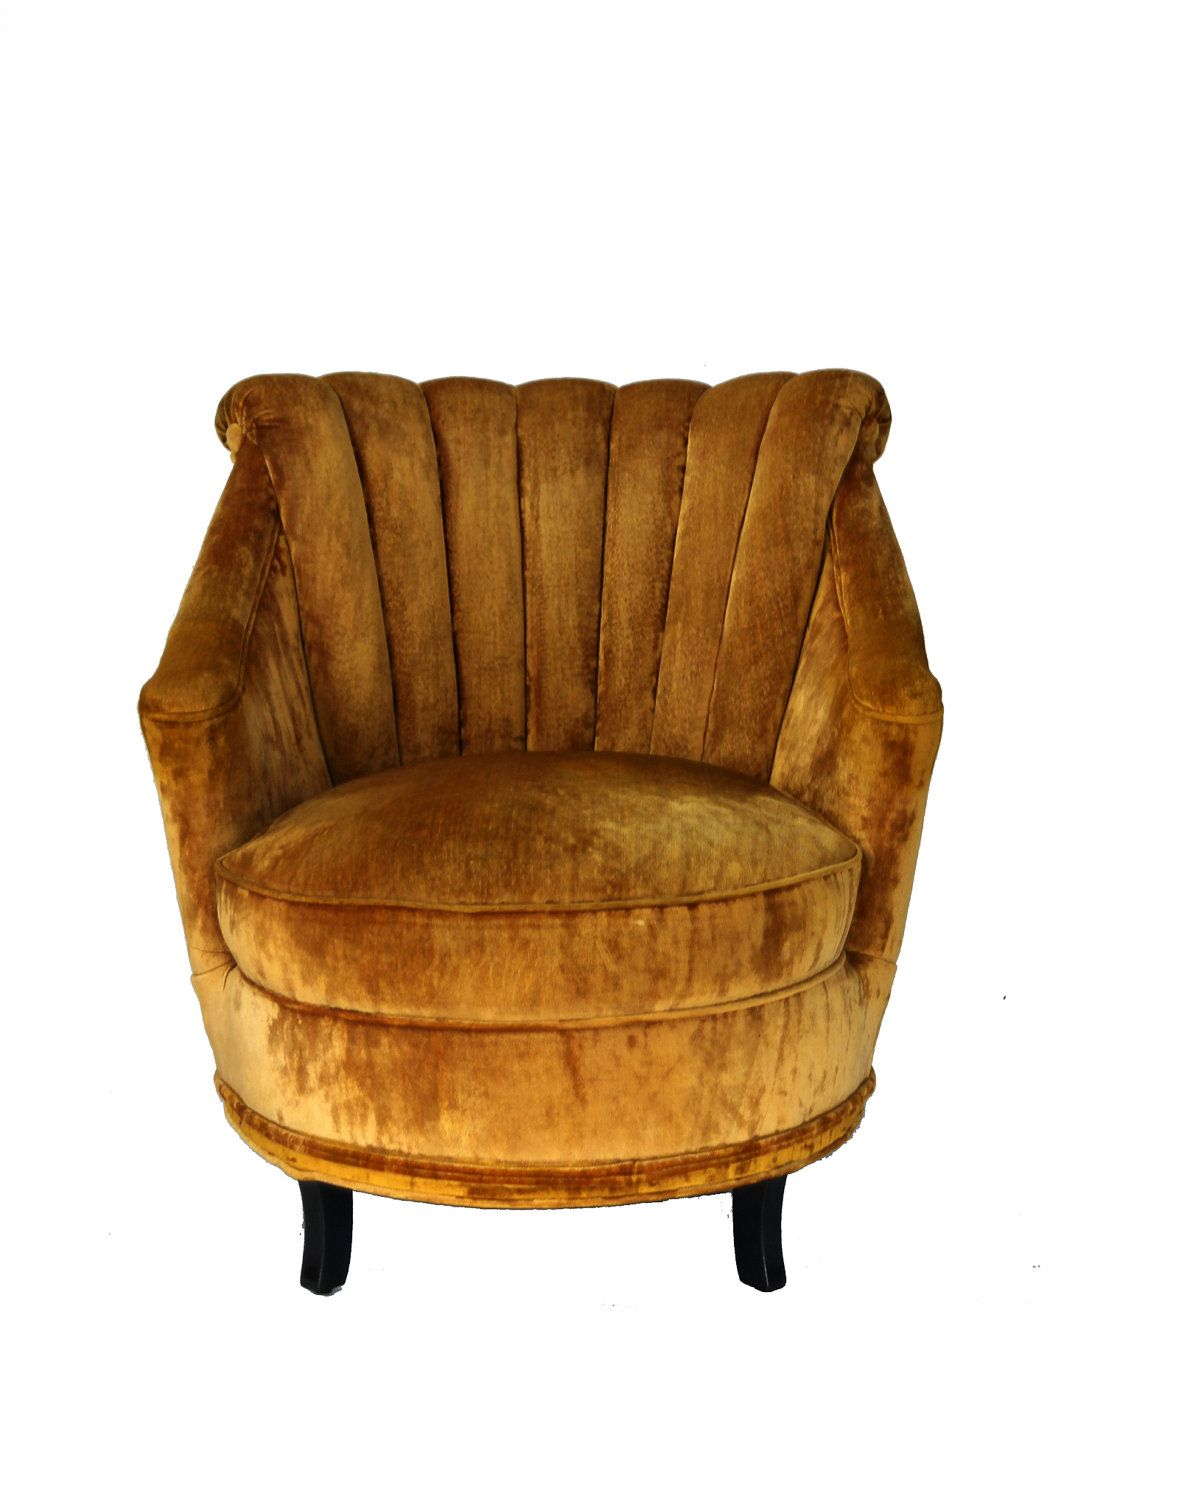 Little Gold Velvet Chair.